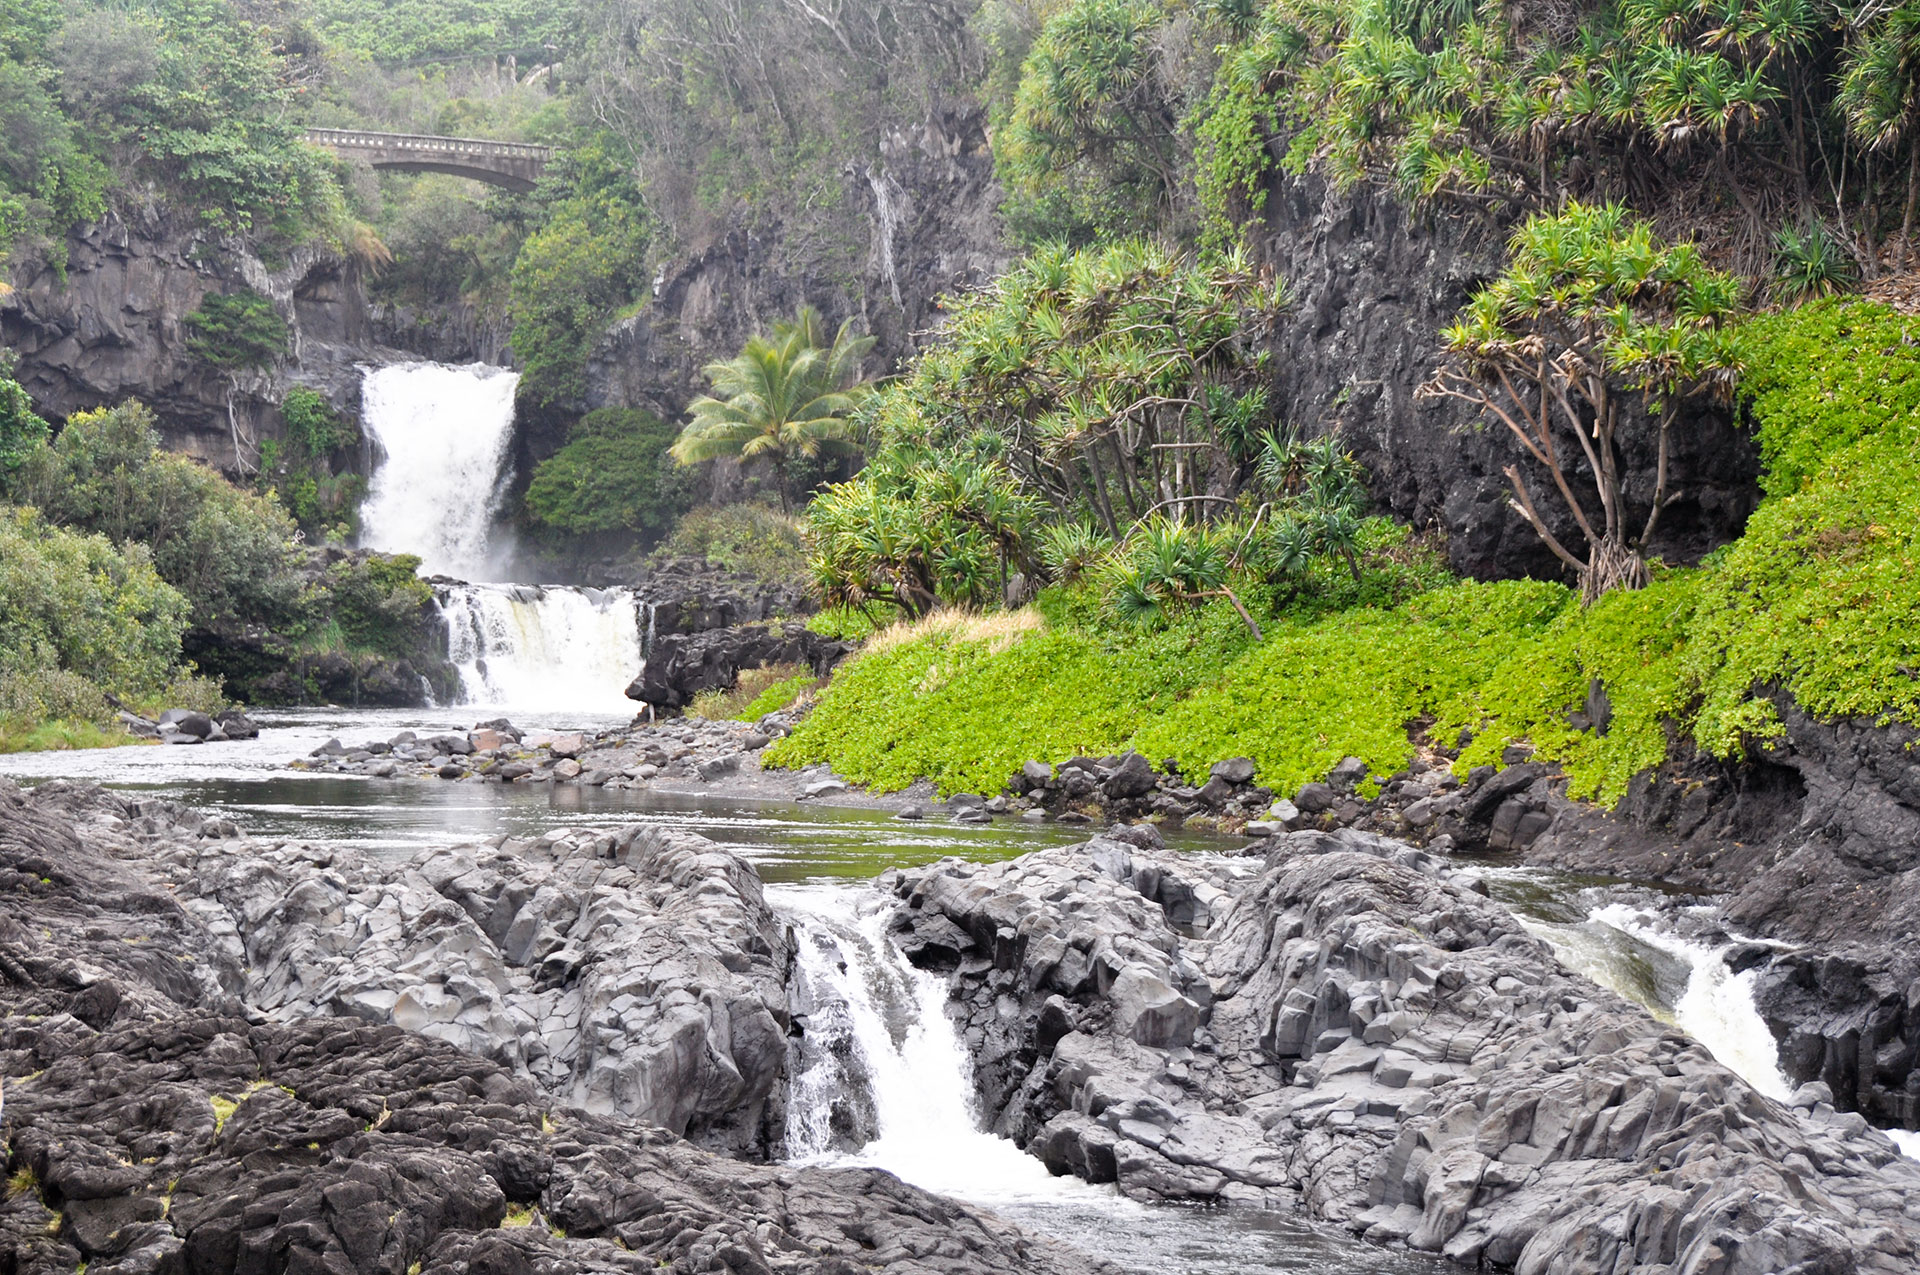 The Seven Sacred Pools are part of Haleakala National Park on Maui.